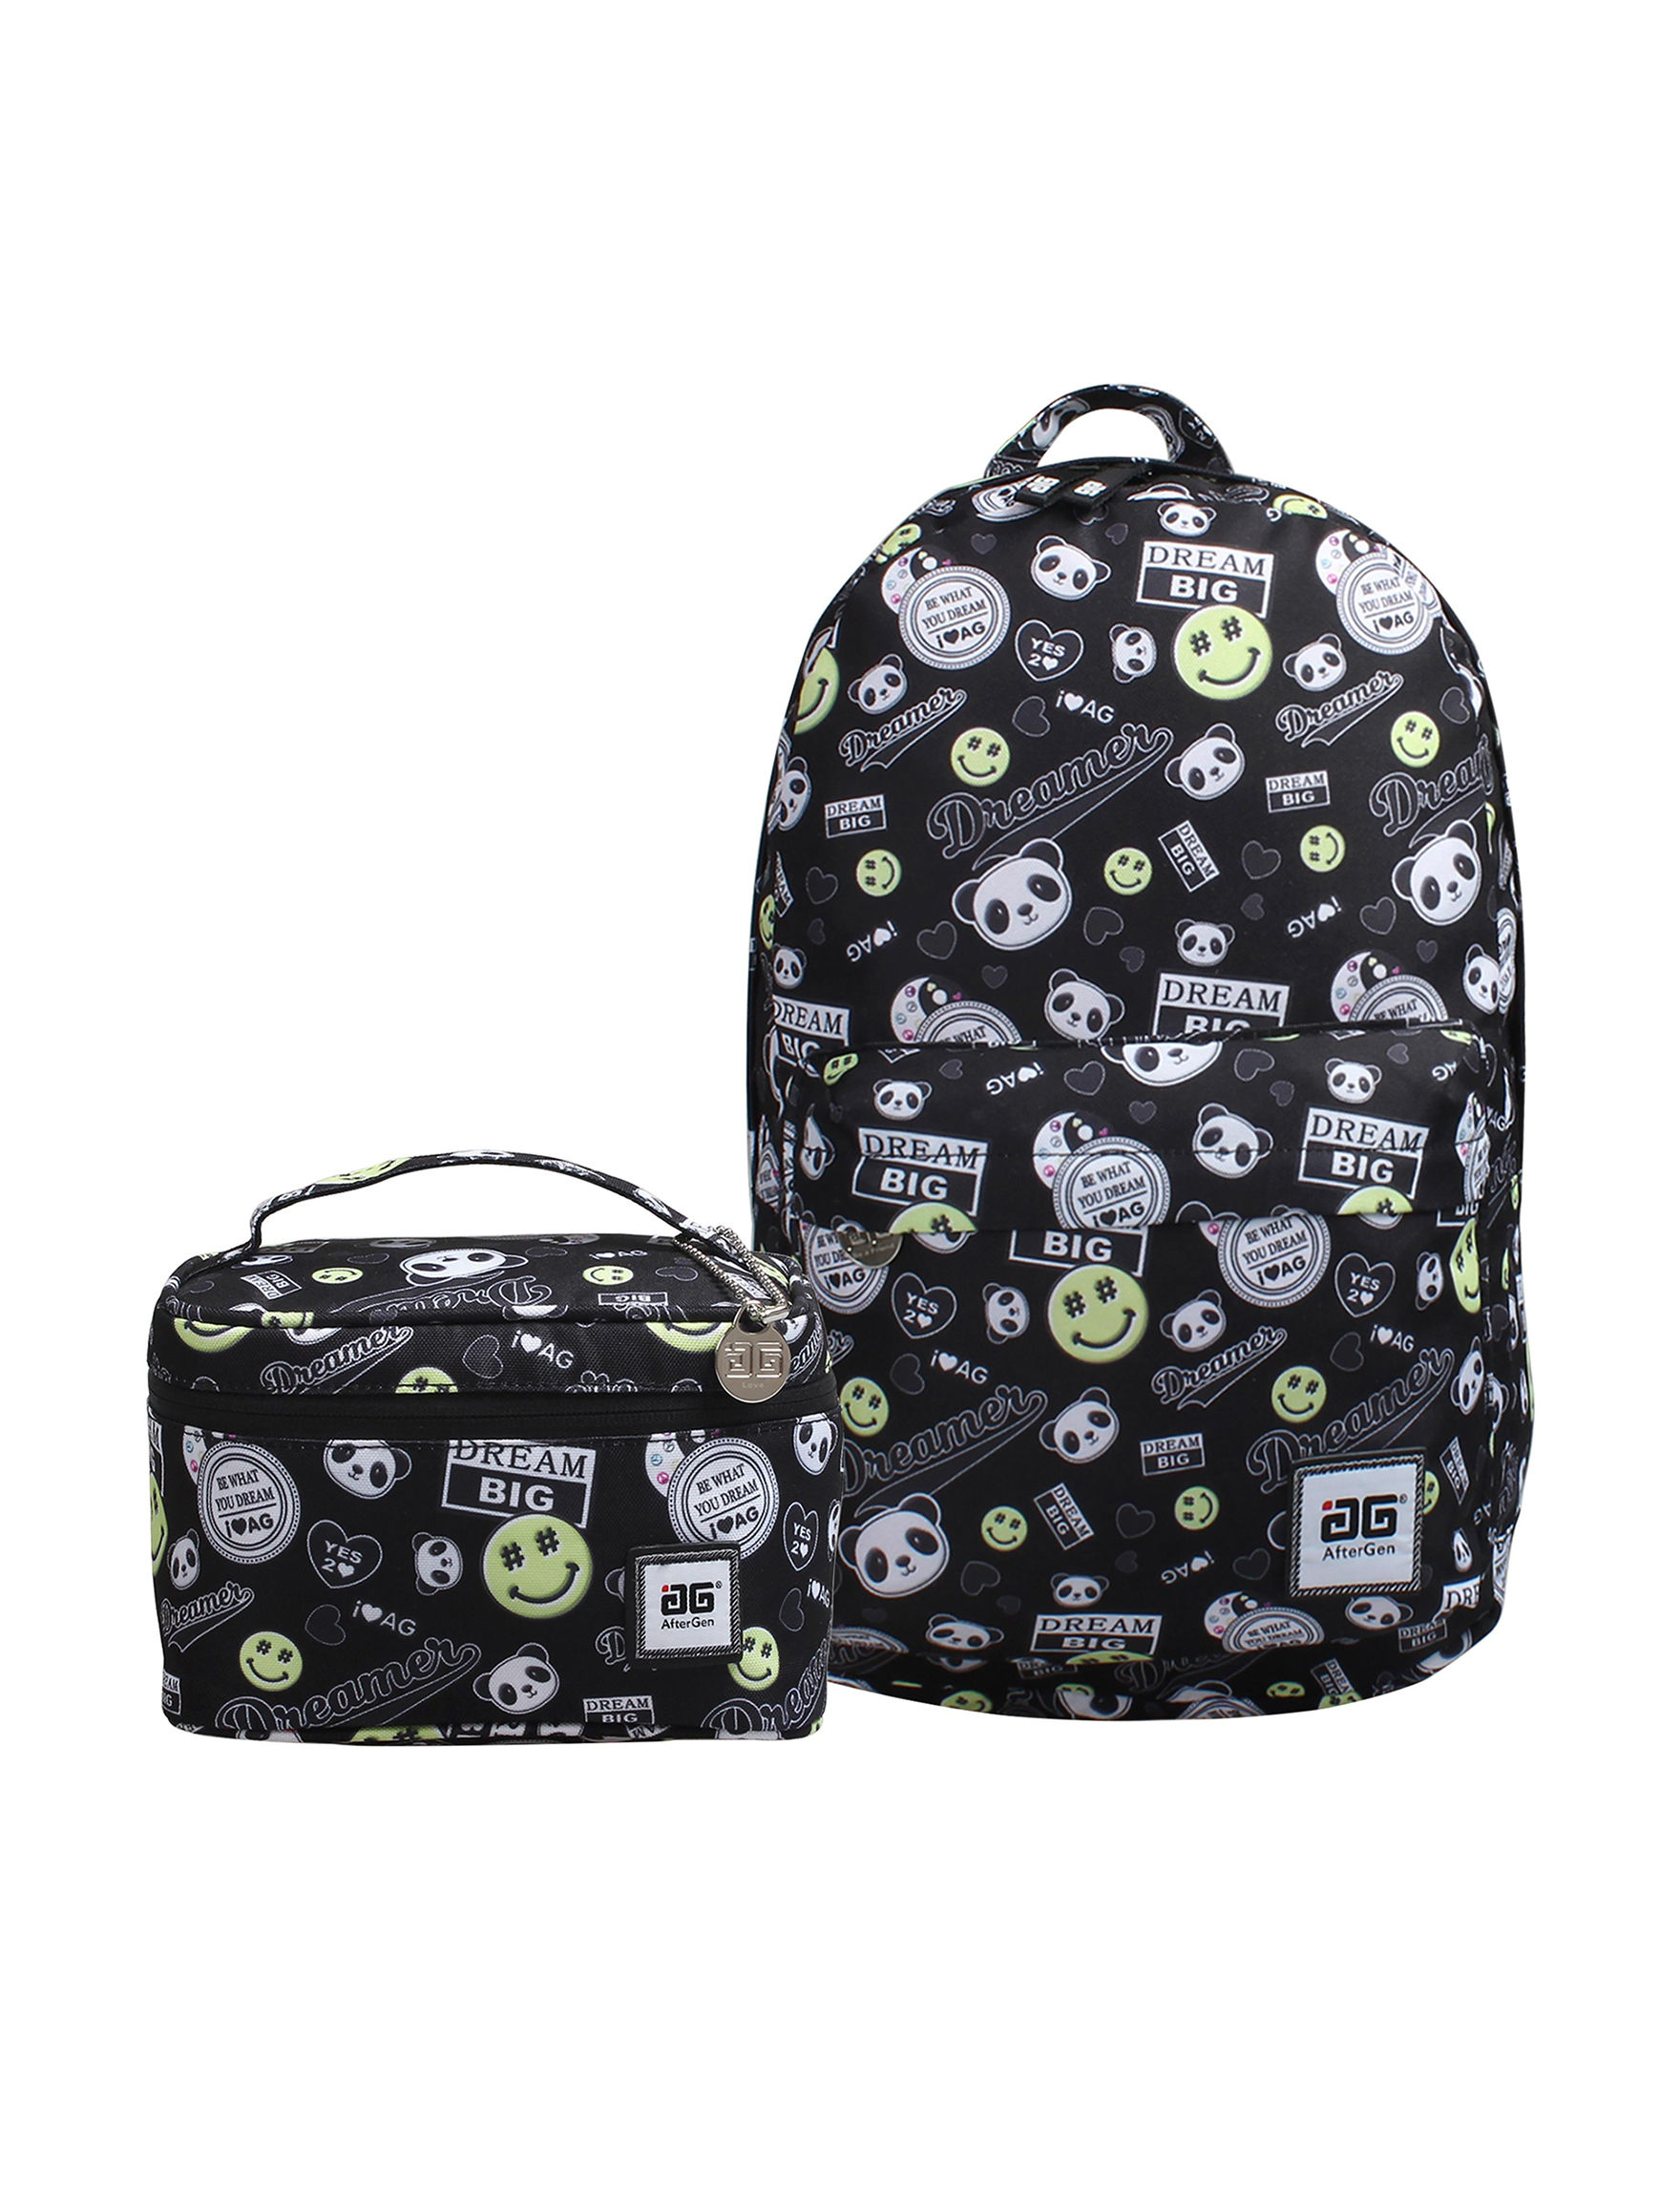 Aftergen Black / White Lunch Boxes & Bags Bookbags & Backpacks Travel Accessories